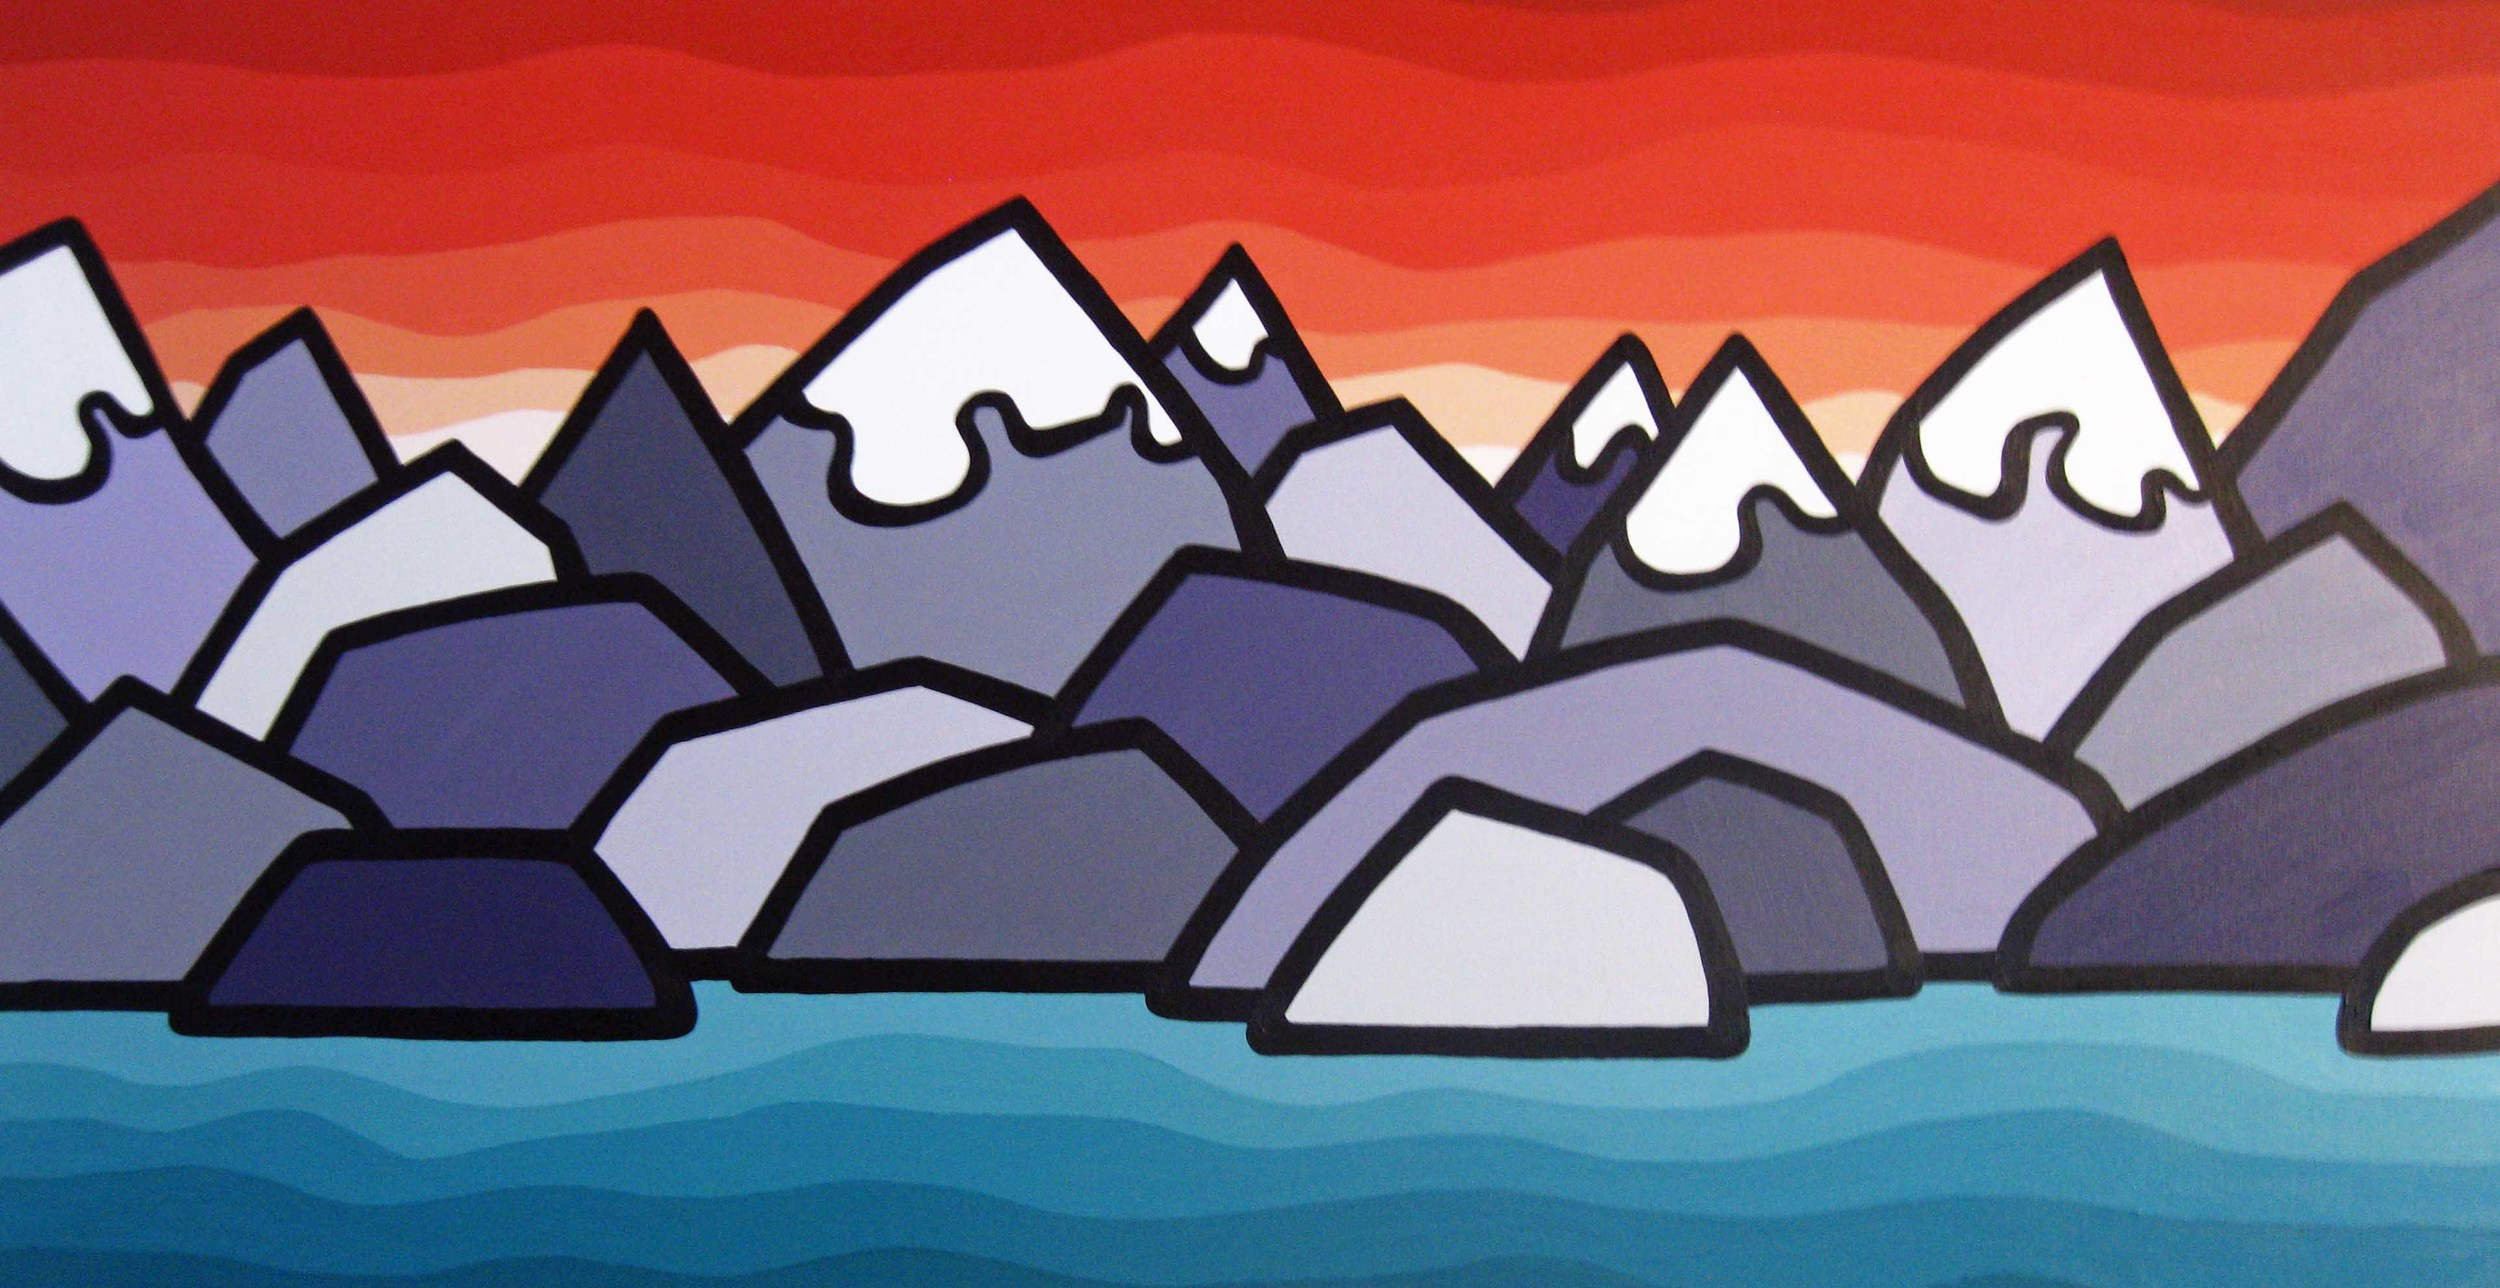 """Title: Sunset in the Mountains  Size: 24"""" x 48"""" Acrylic on Canvas  SOLD"""